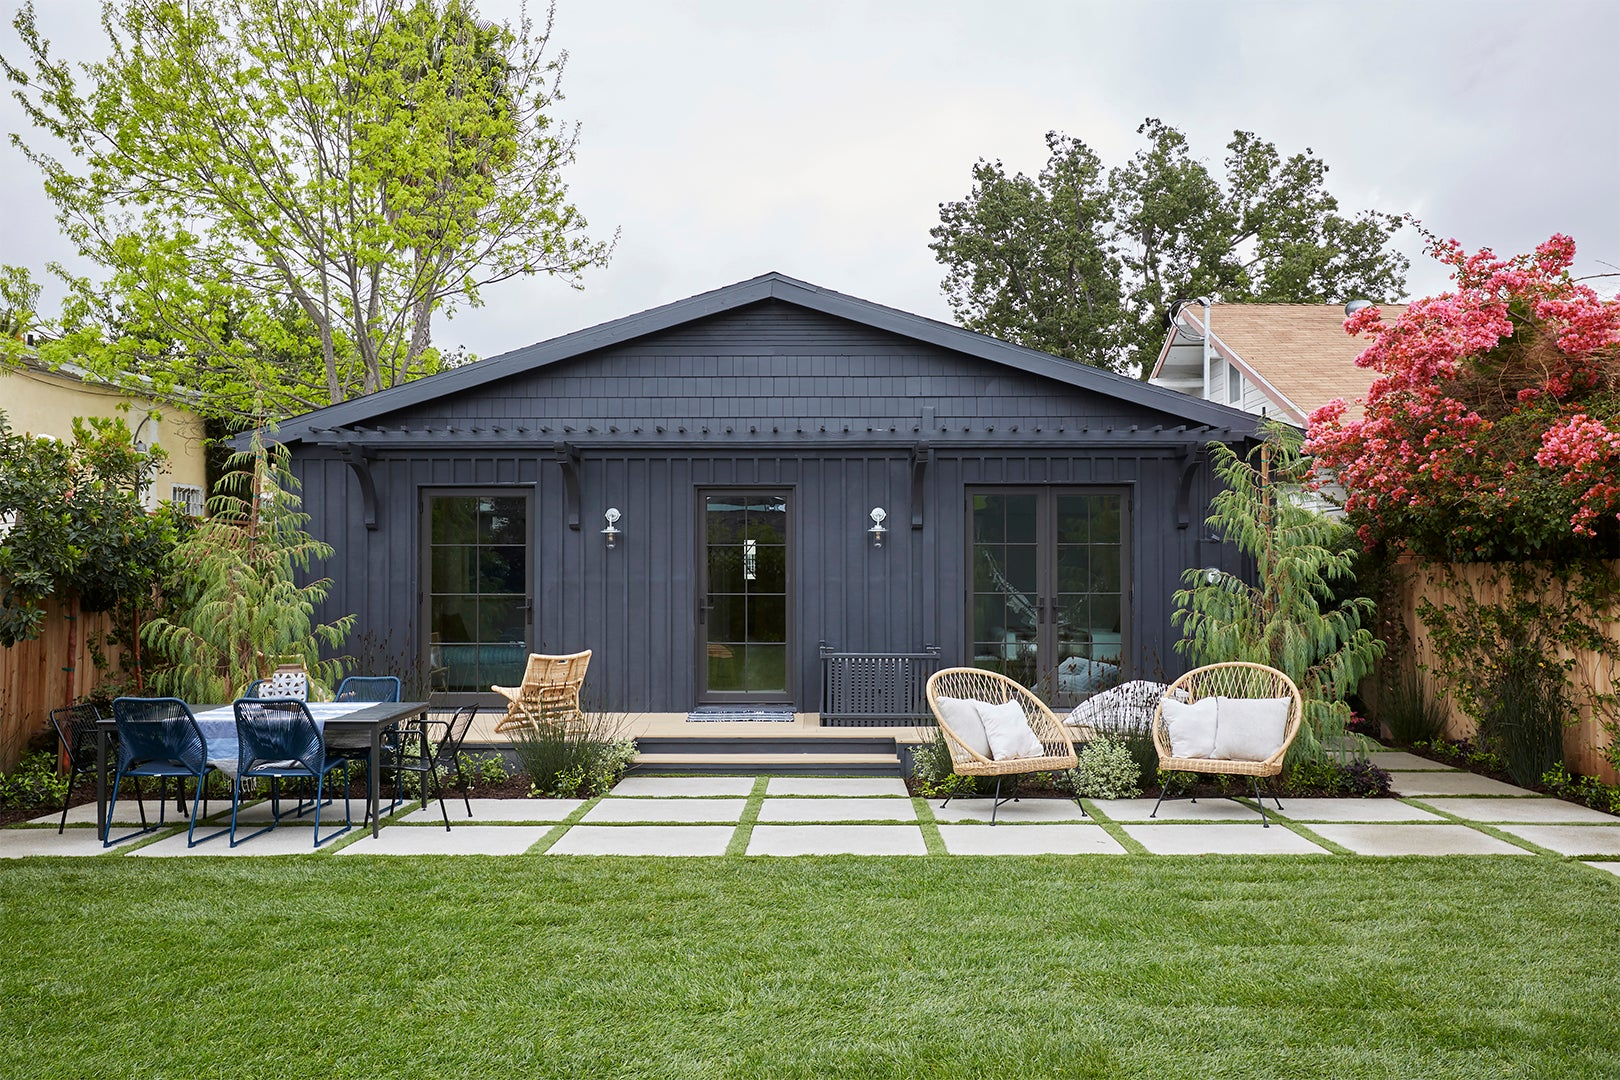 Craftsman house with black exterior